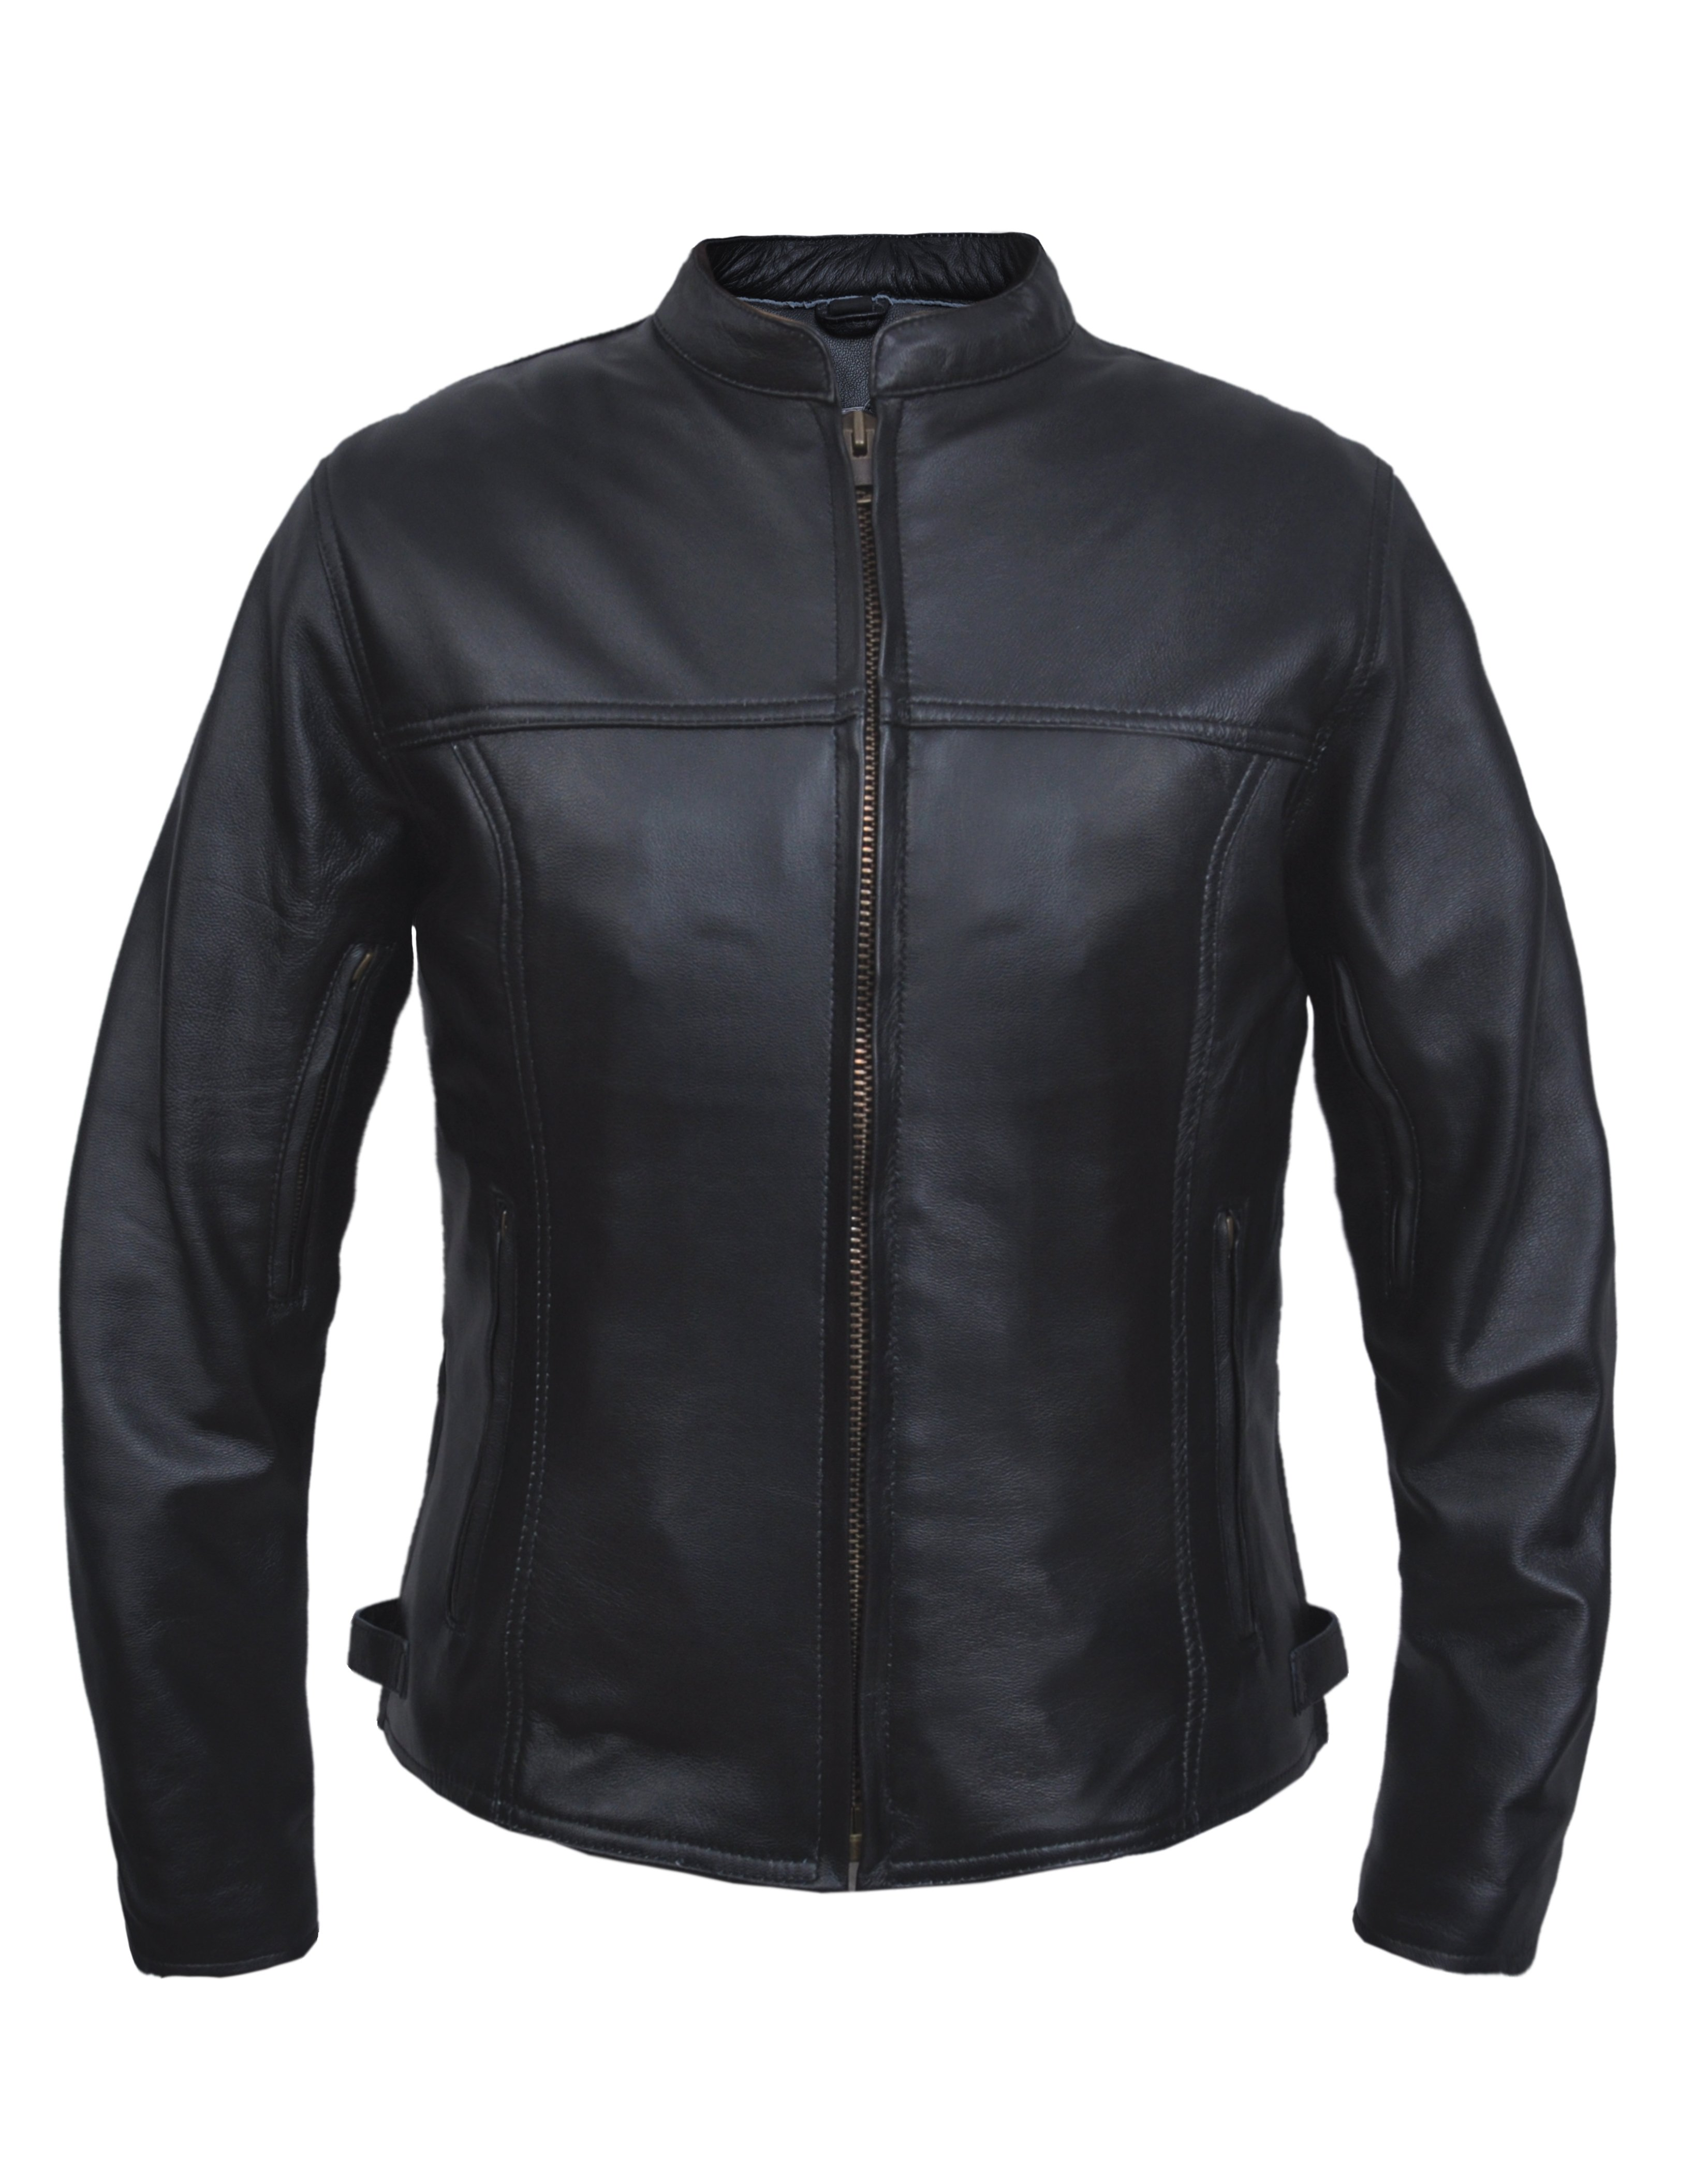 UNIK Ladies Premium Lightweight Leather Motorcycle Jacket - SKU 6557-NG-UN